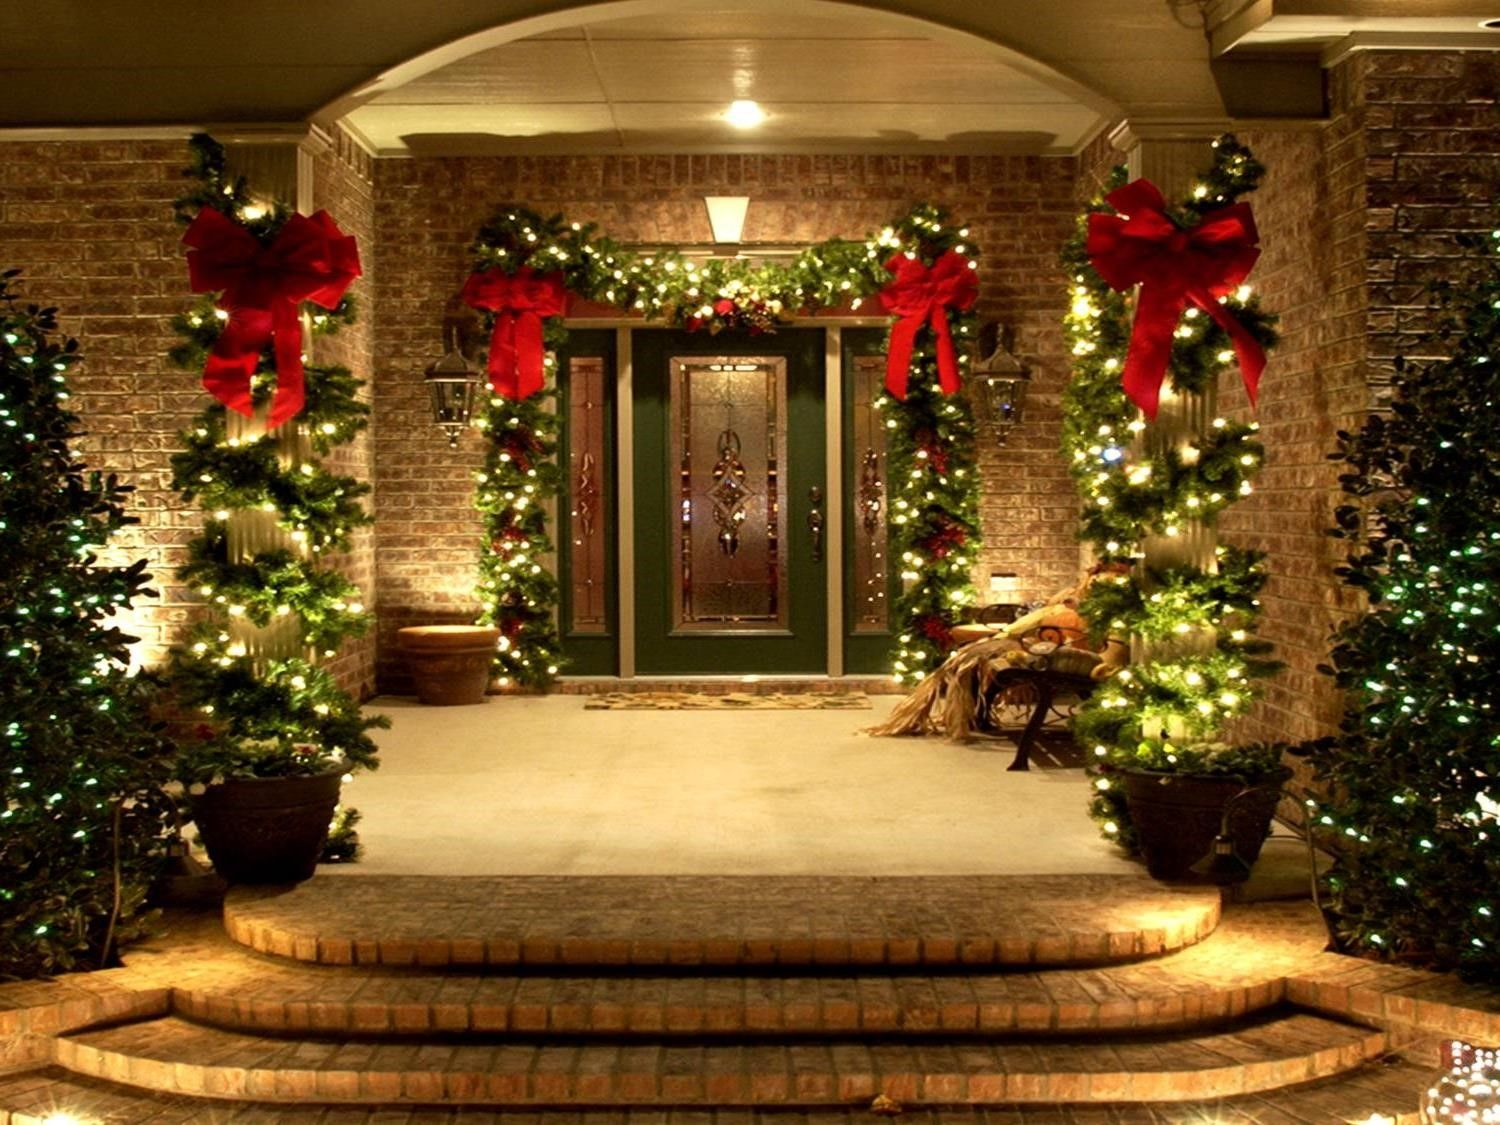 elegant outdoor christmas decorations ideas yurganet - Elegant Outdoor Christmas Decorations